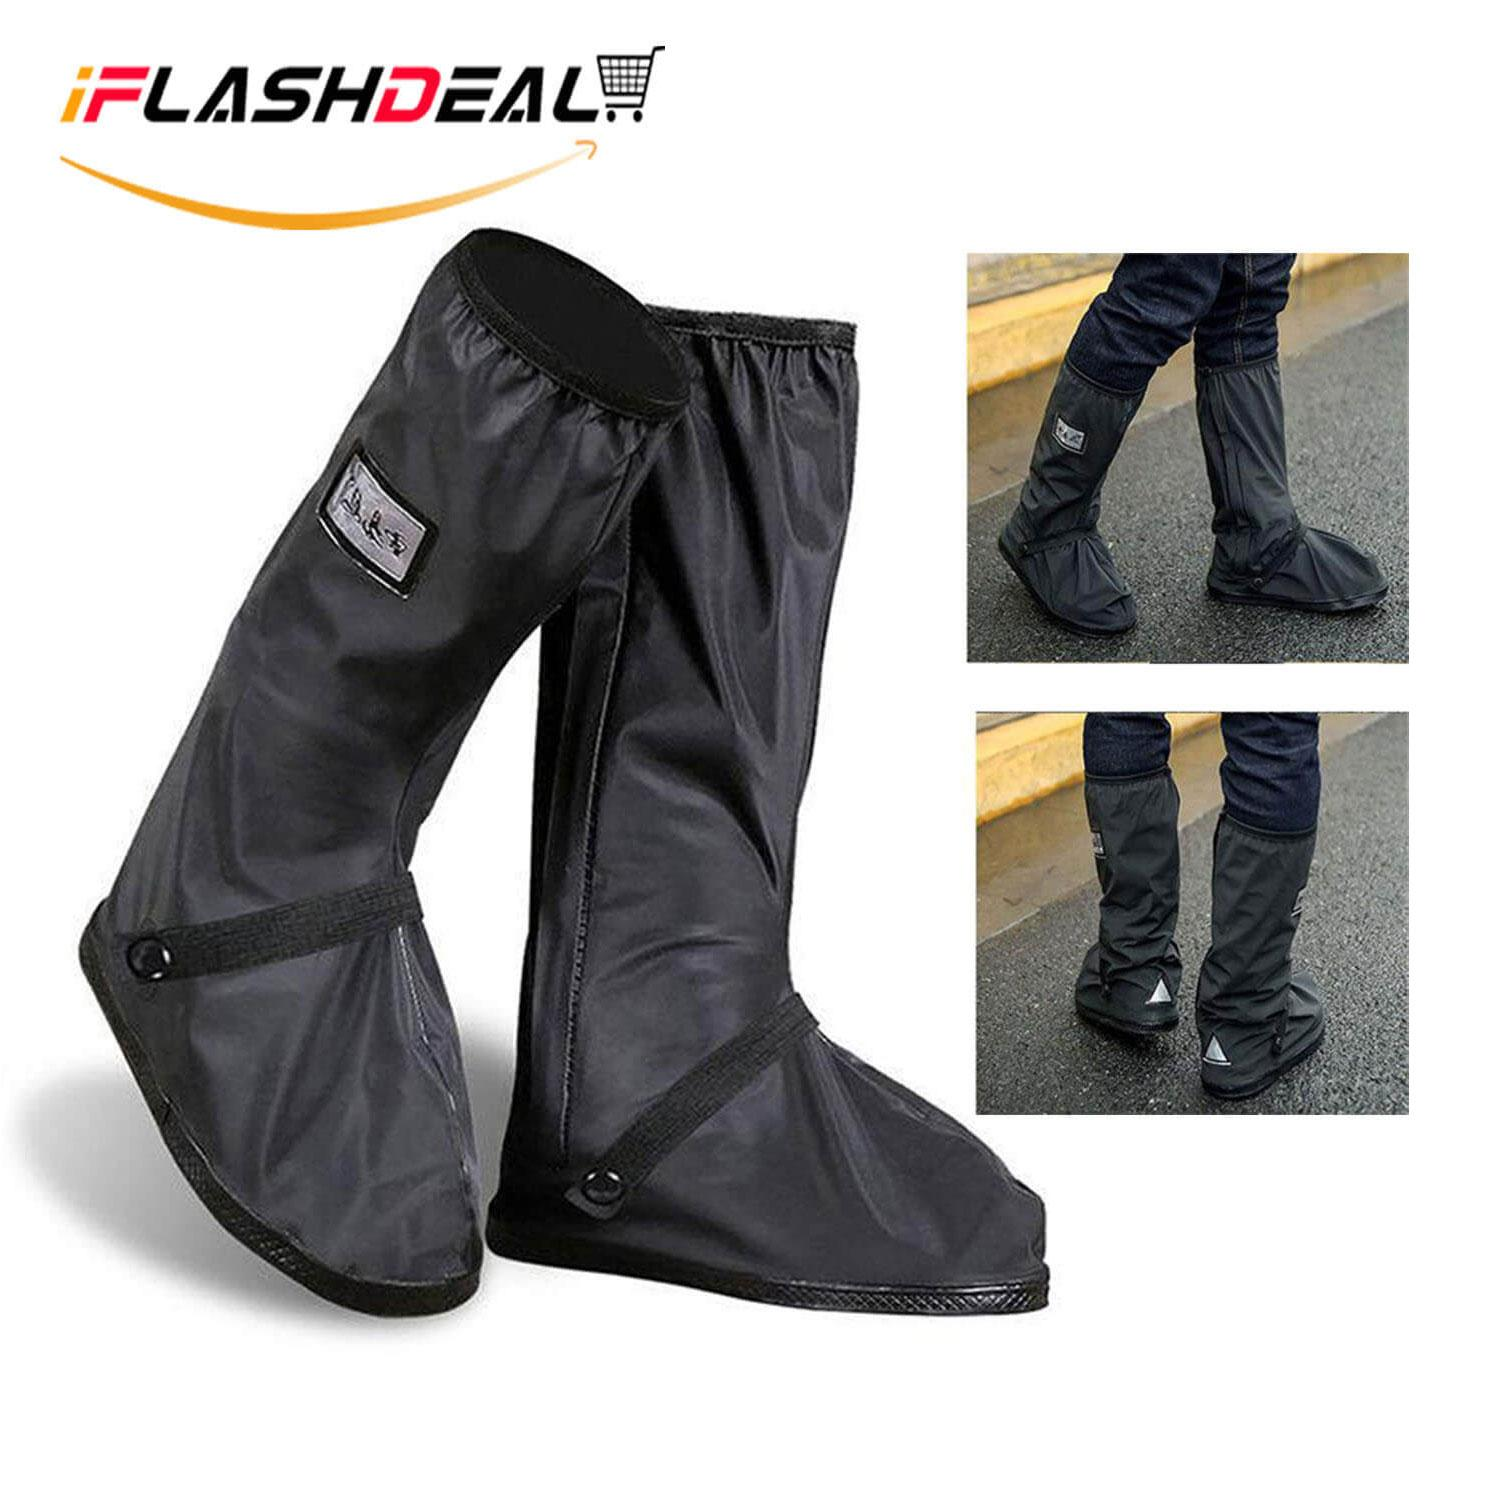 a6a742b5117dd iFlashDeal Rain Boots Rain Shoes Cover Waterproof Overshoes for Women Men  Waterproof Boot